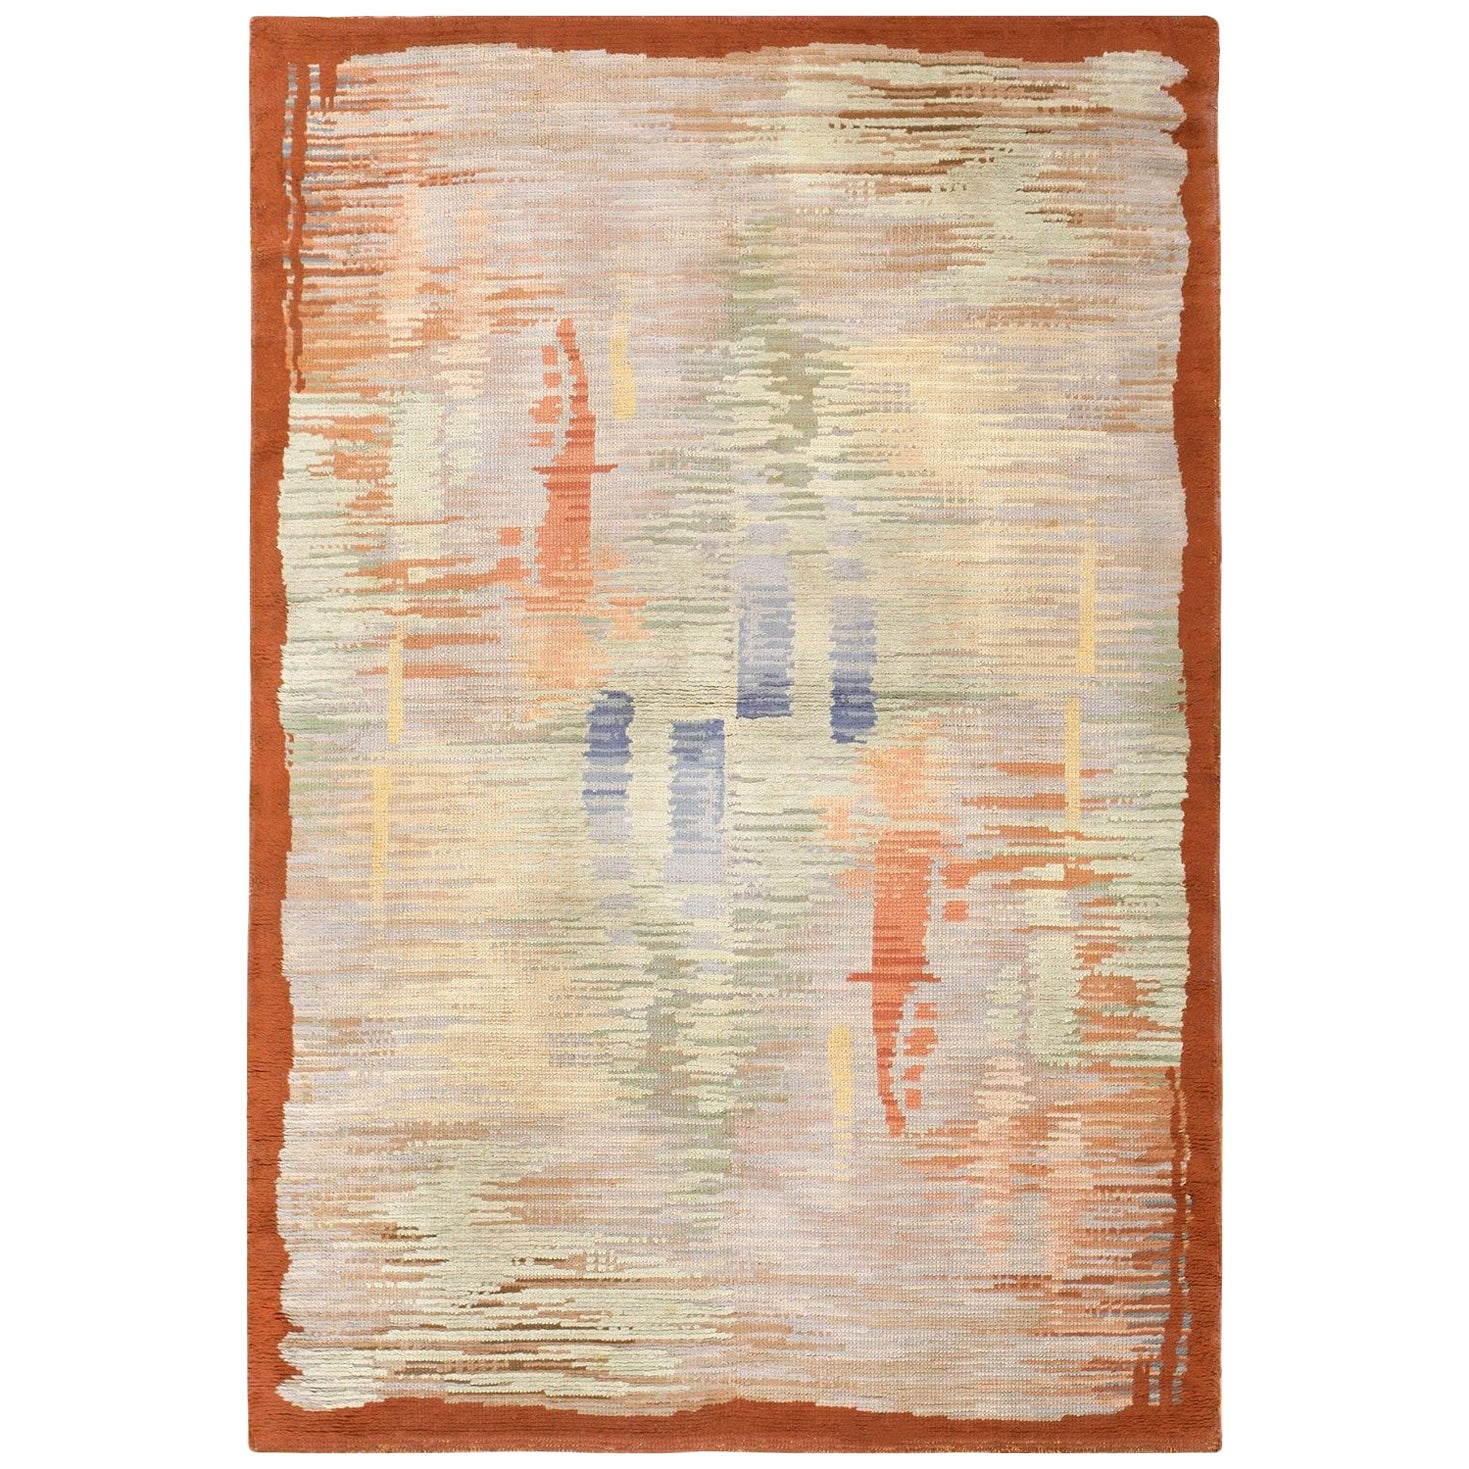 Vintage Surrealist French Art Deco Rug. Size: 5 ft 5 in x 8 ft 1 in